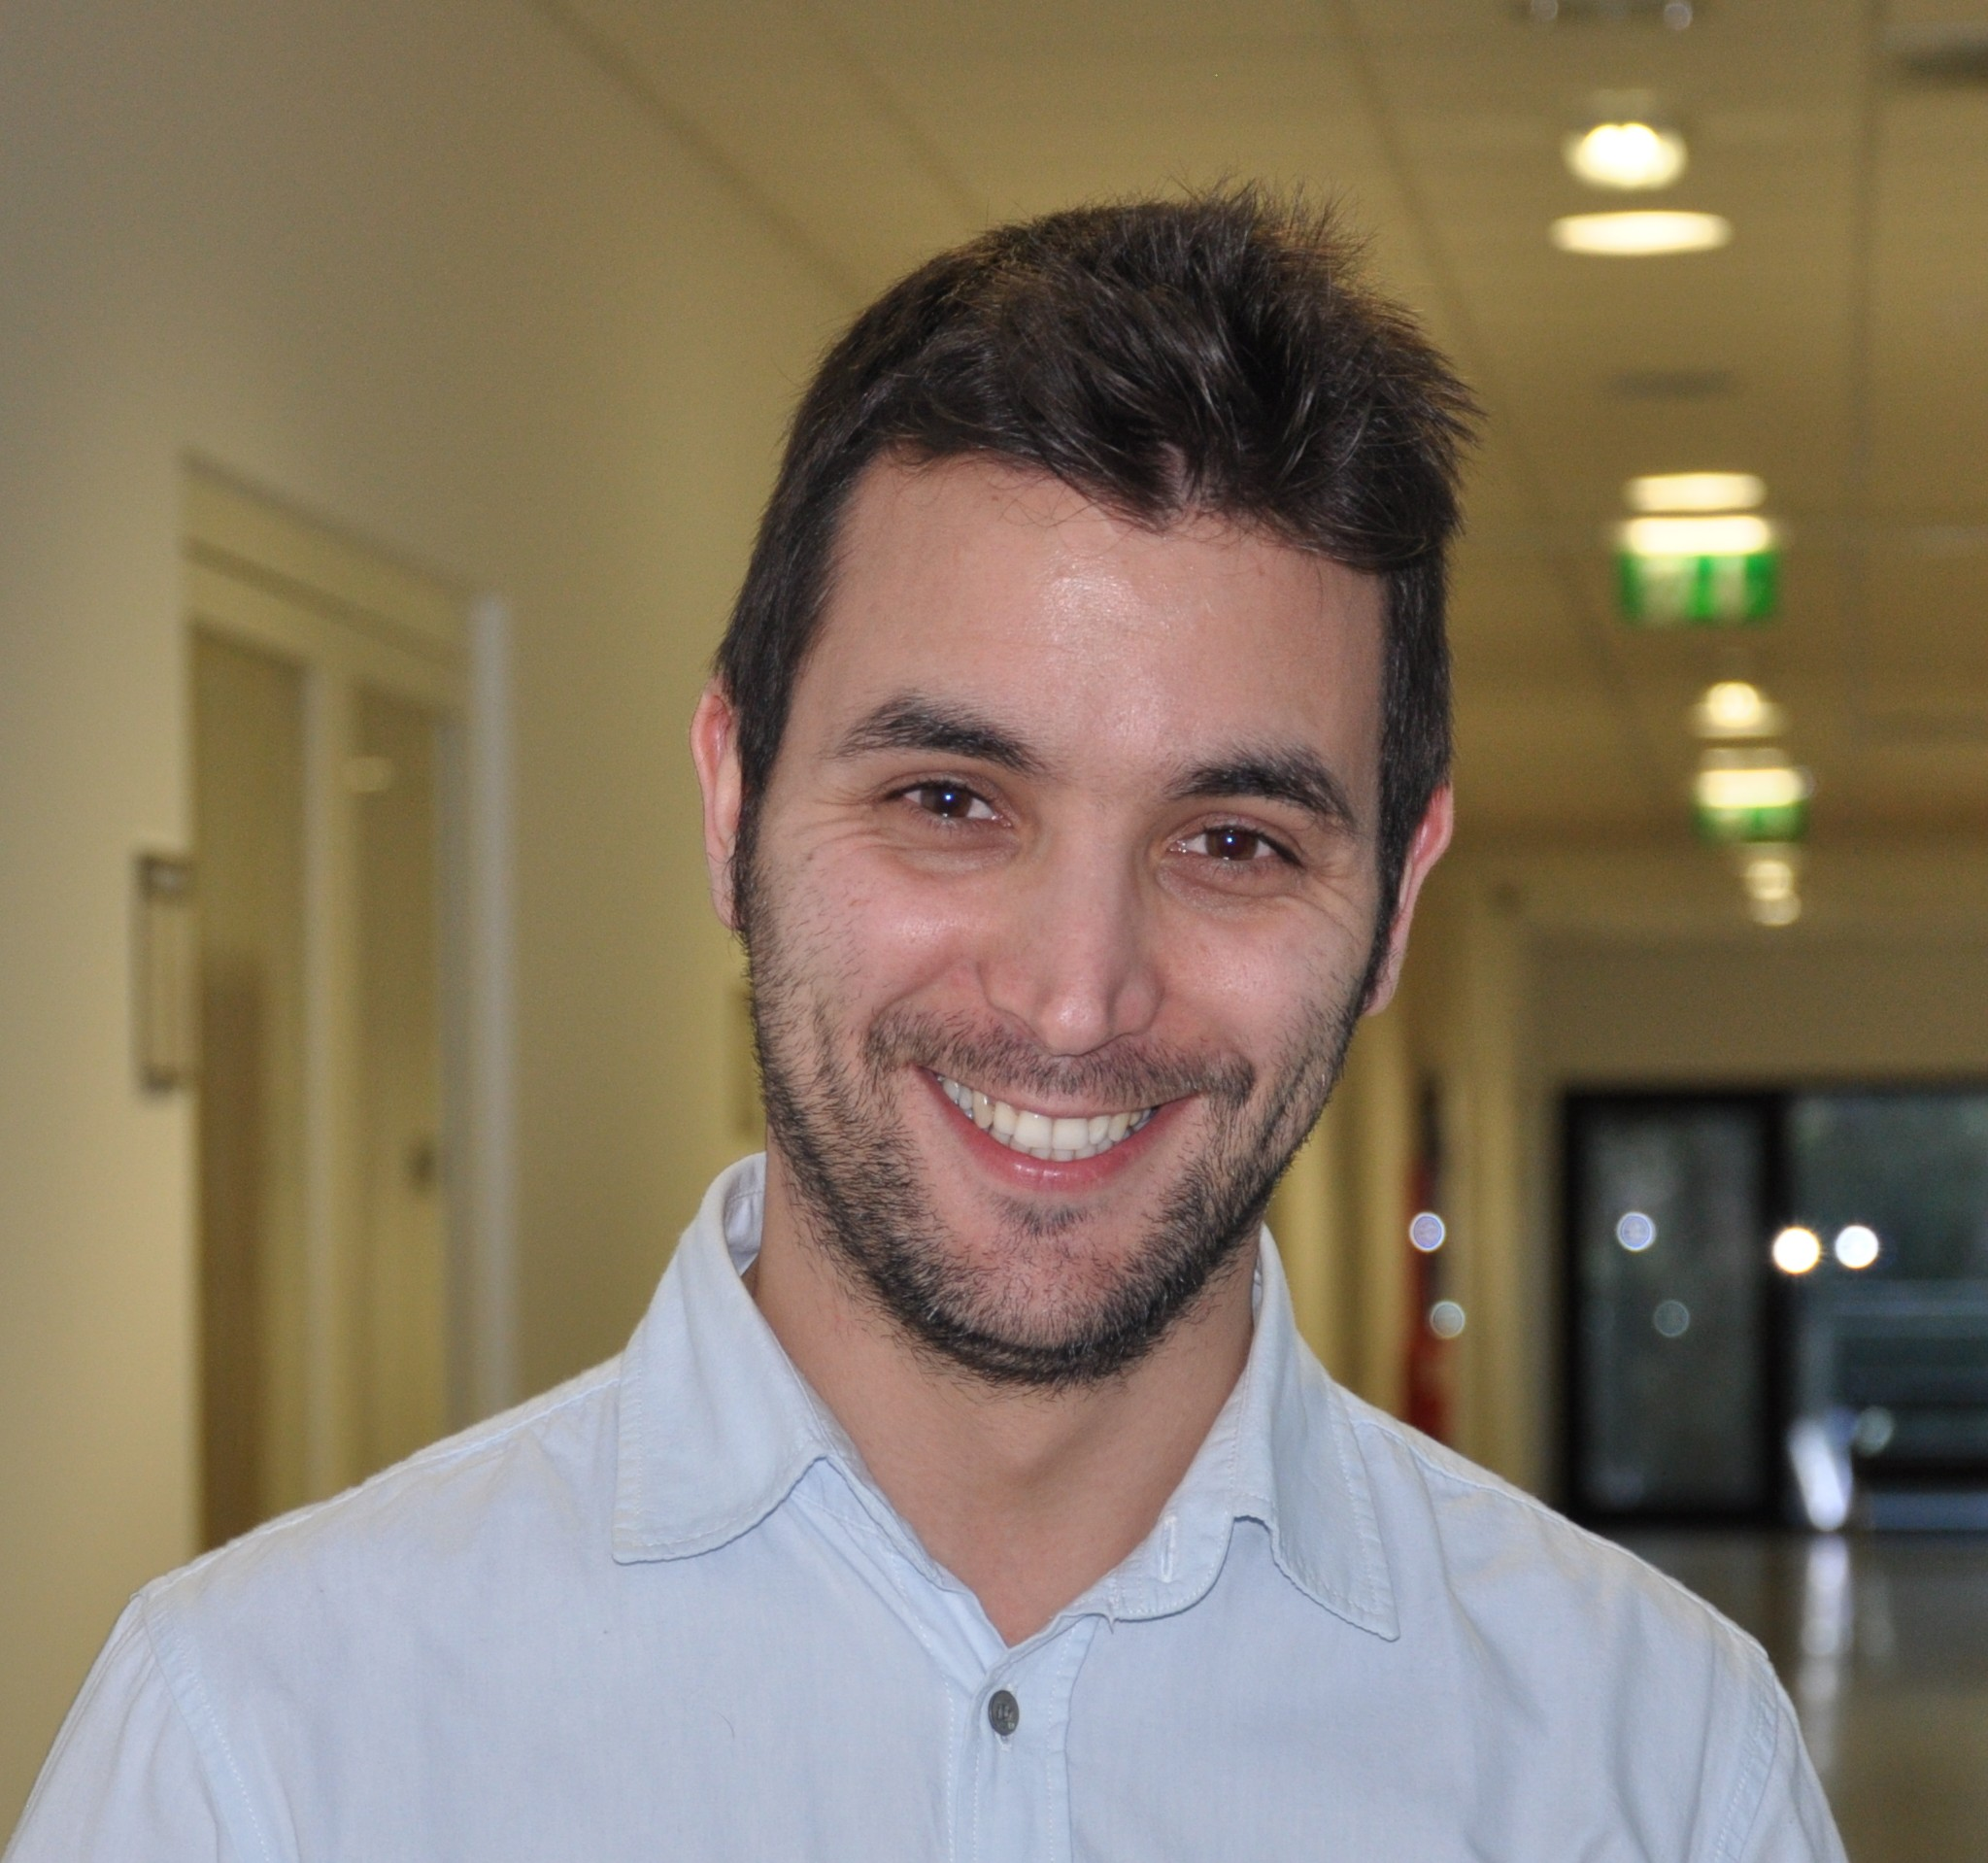 The team is growing! Renato Cardoso is our new Head of Laboratory